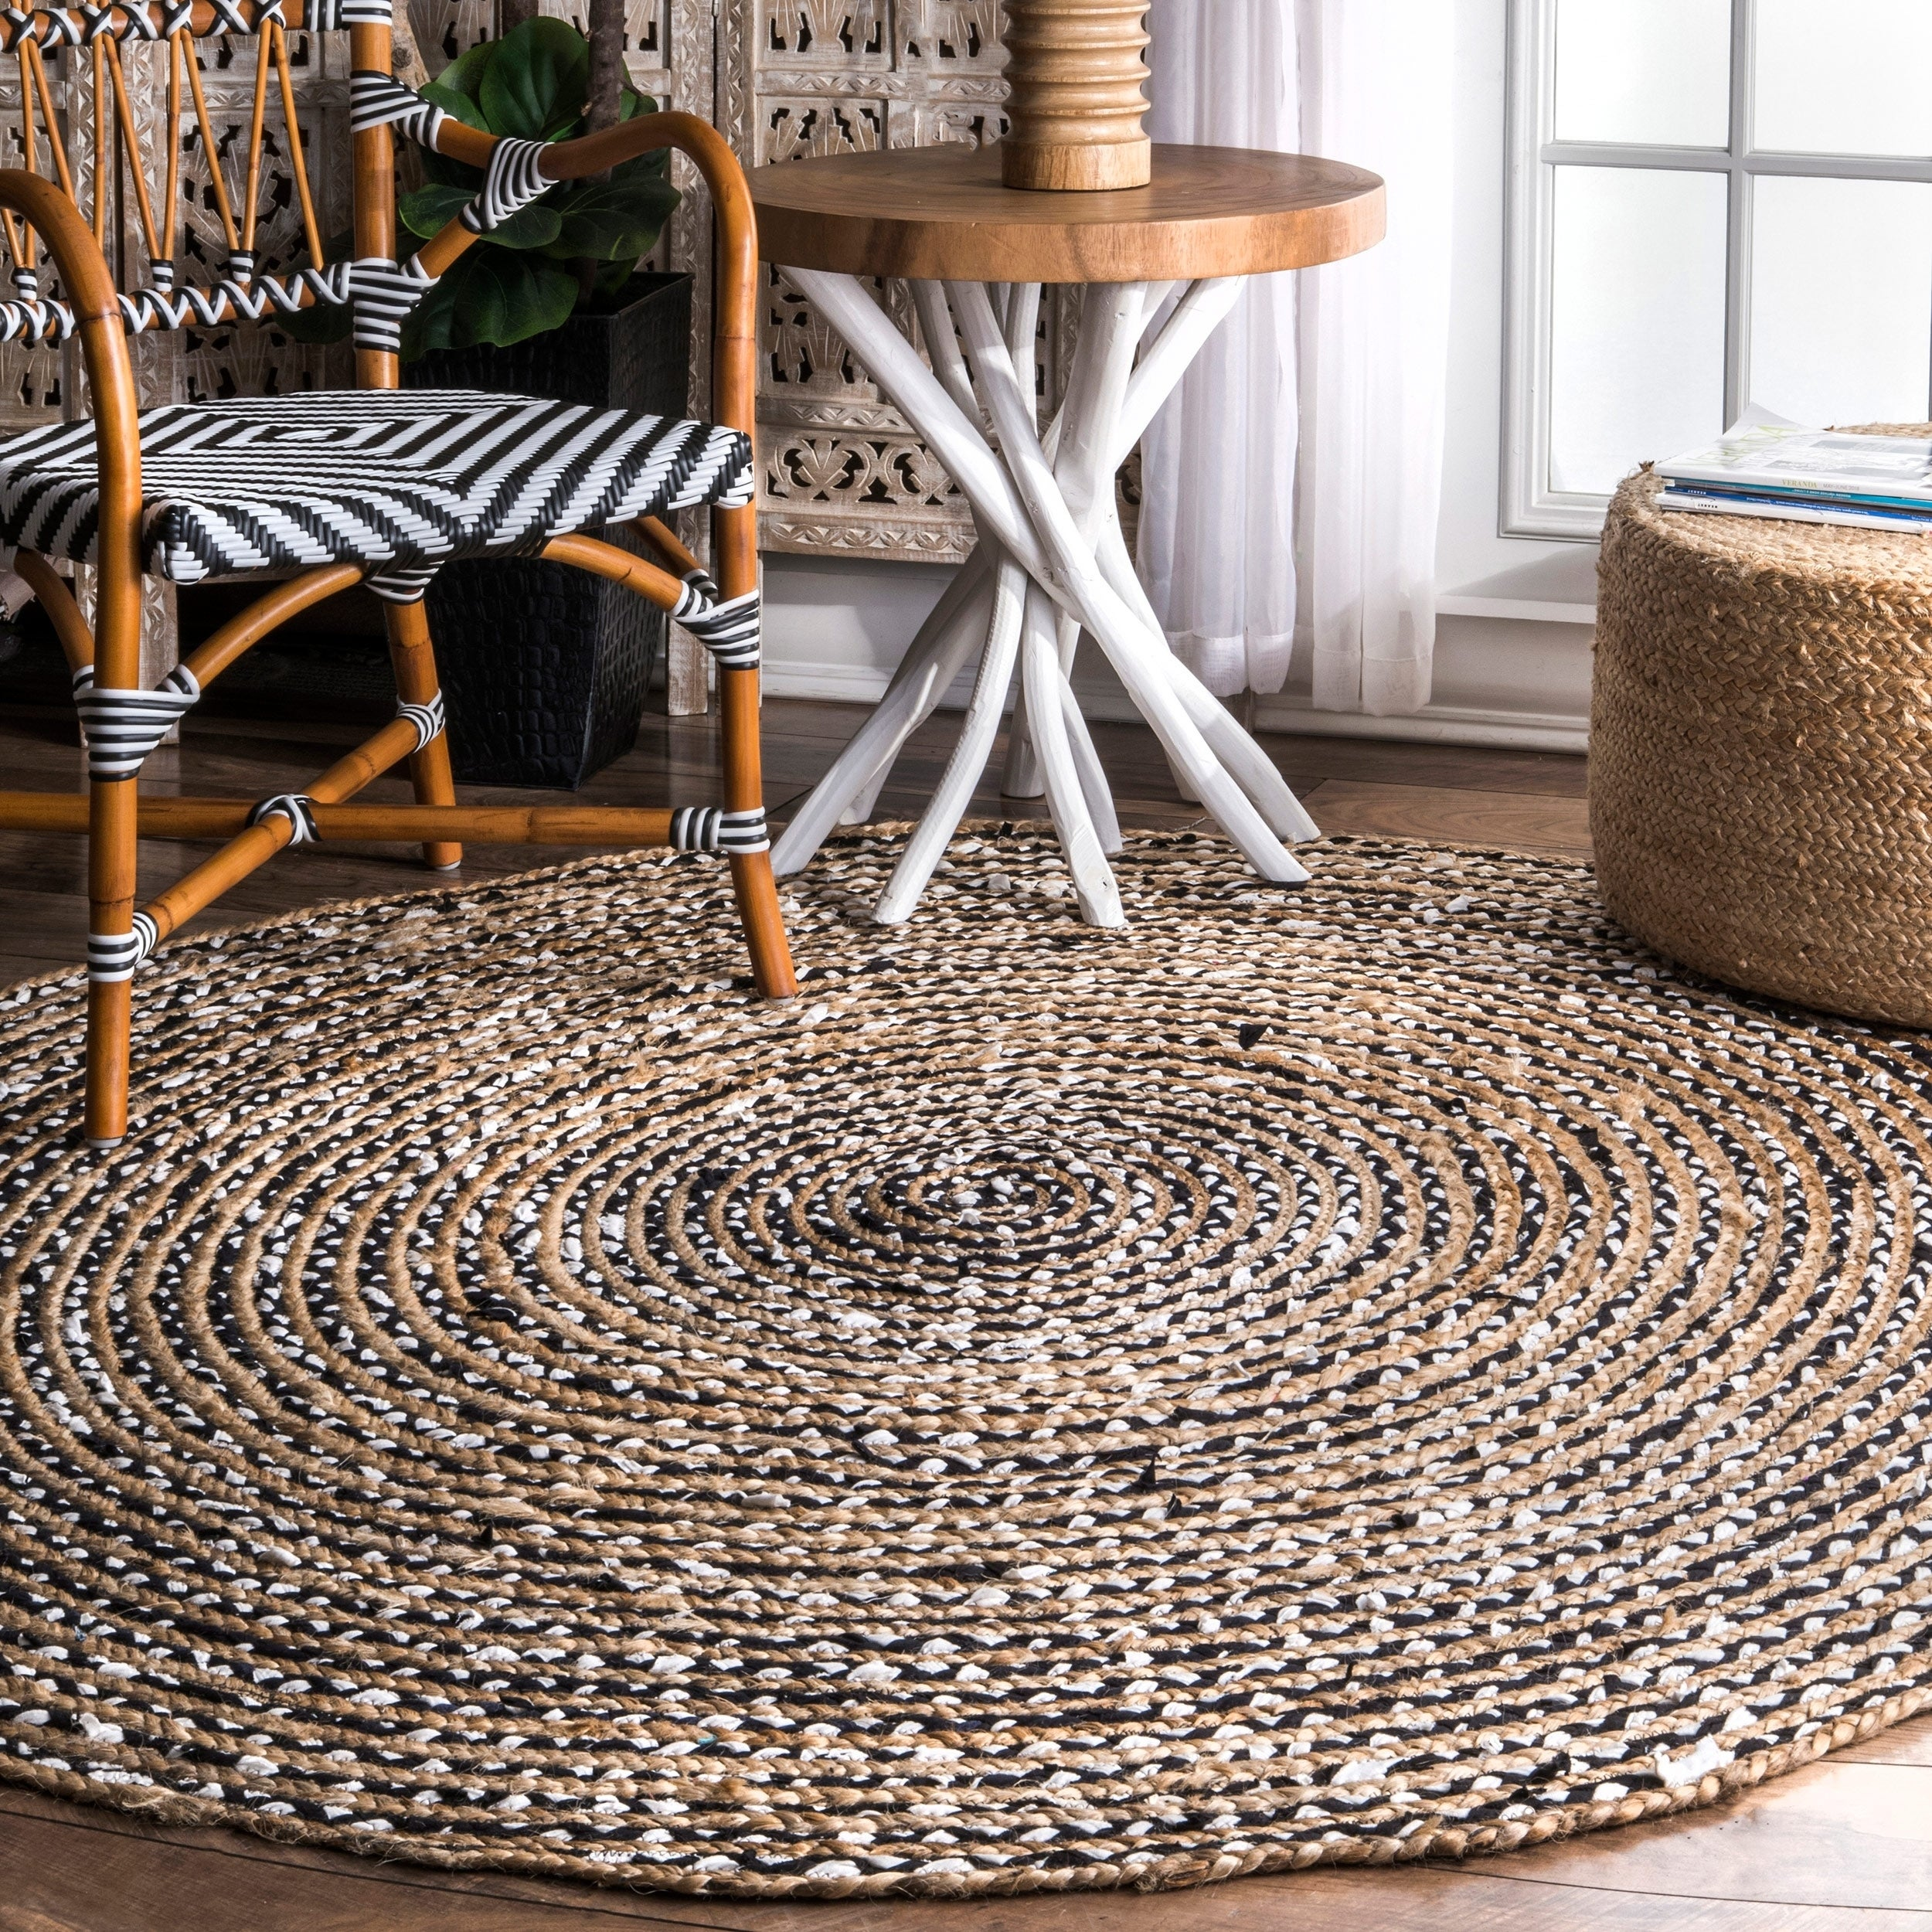 Shop nuloom causal natural fiber jute and cotton pinstripes black round rug 6 round 6 round on sale free shipping today overstock com 16633422